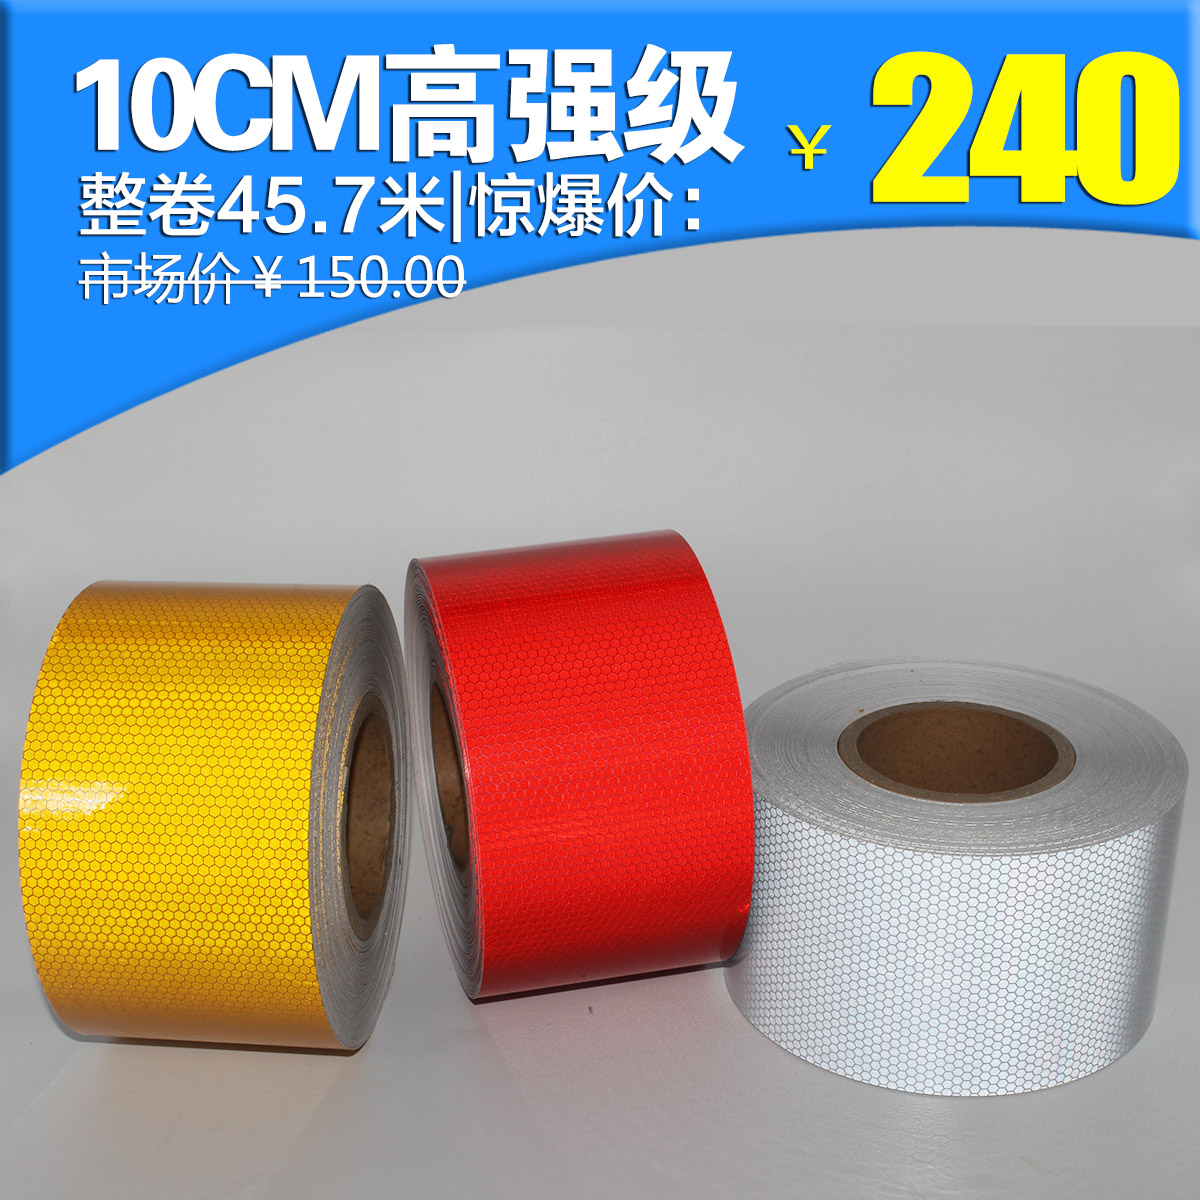 Mnsd 10cm strength level security reflective warning tape warning tape reflective stickers reflective film reflective tape